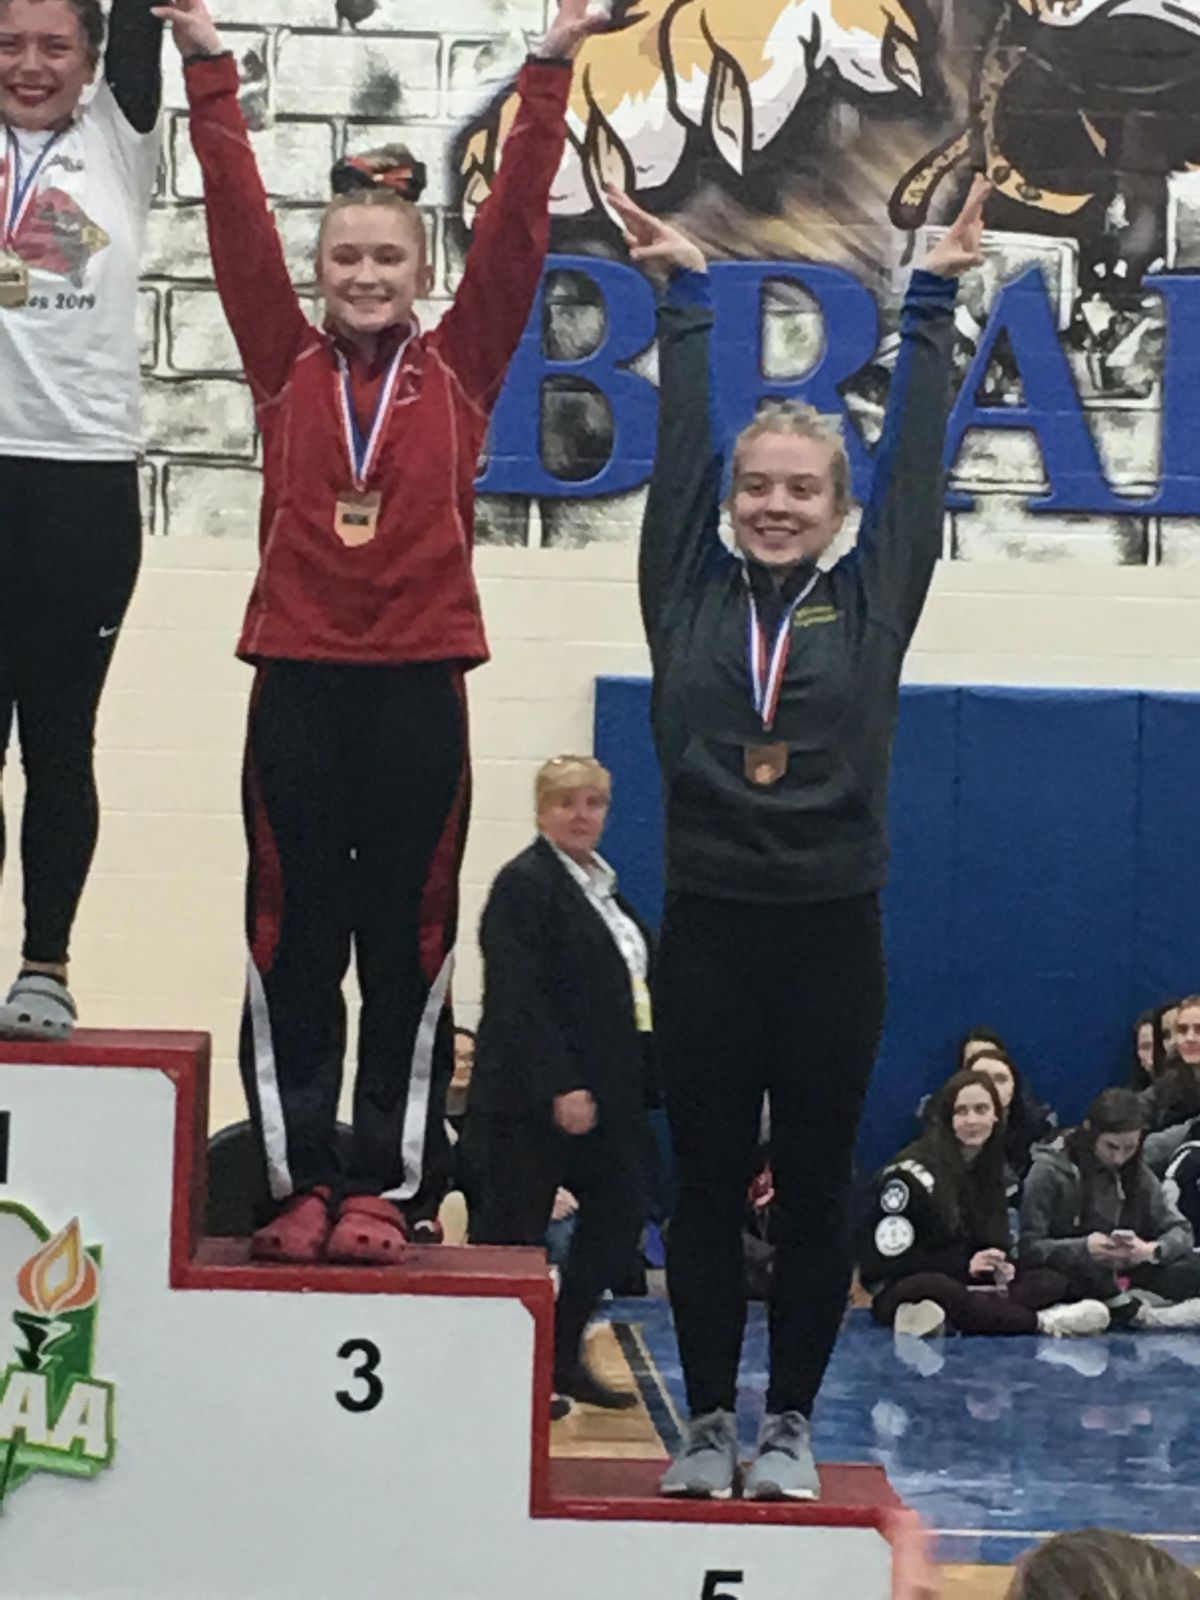 Gymnast, Rachel Furlong Places 5th on Beam and Earns All Ohio Honors